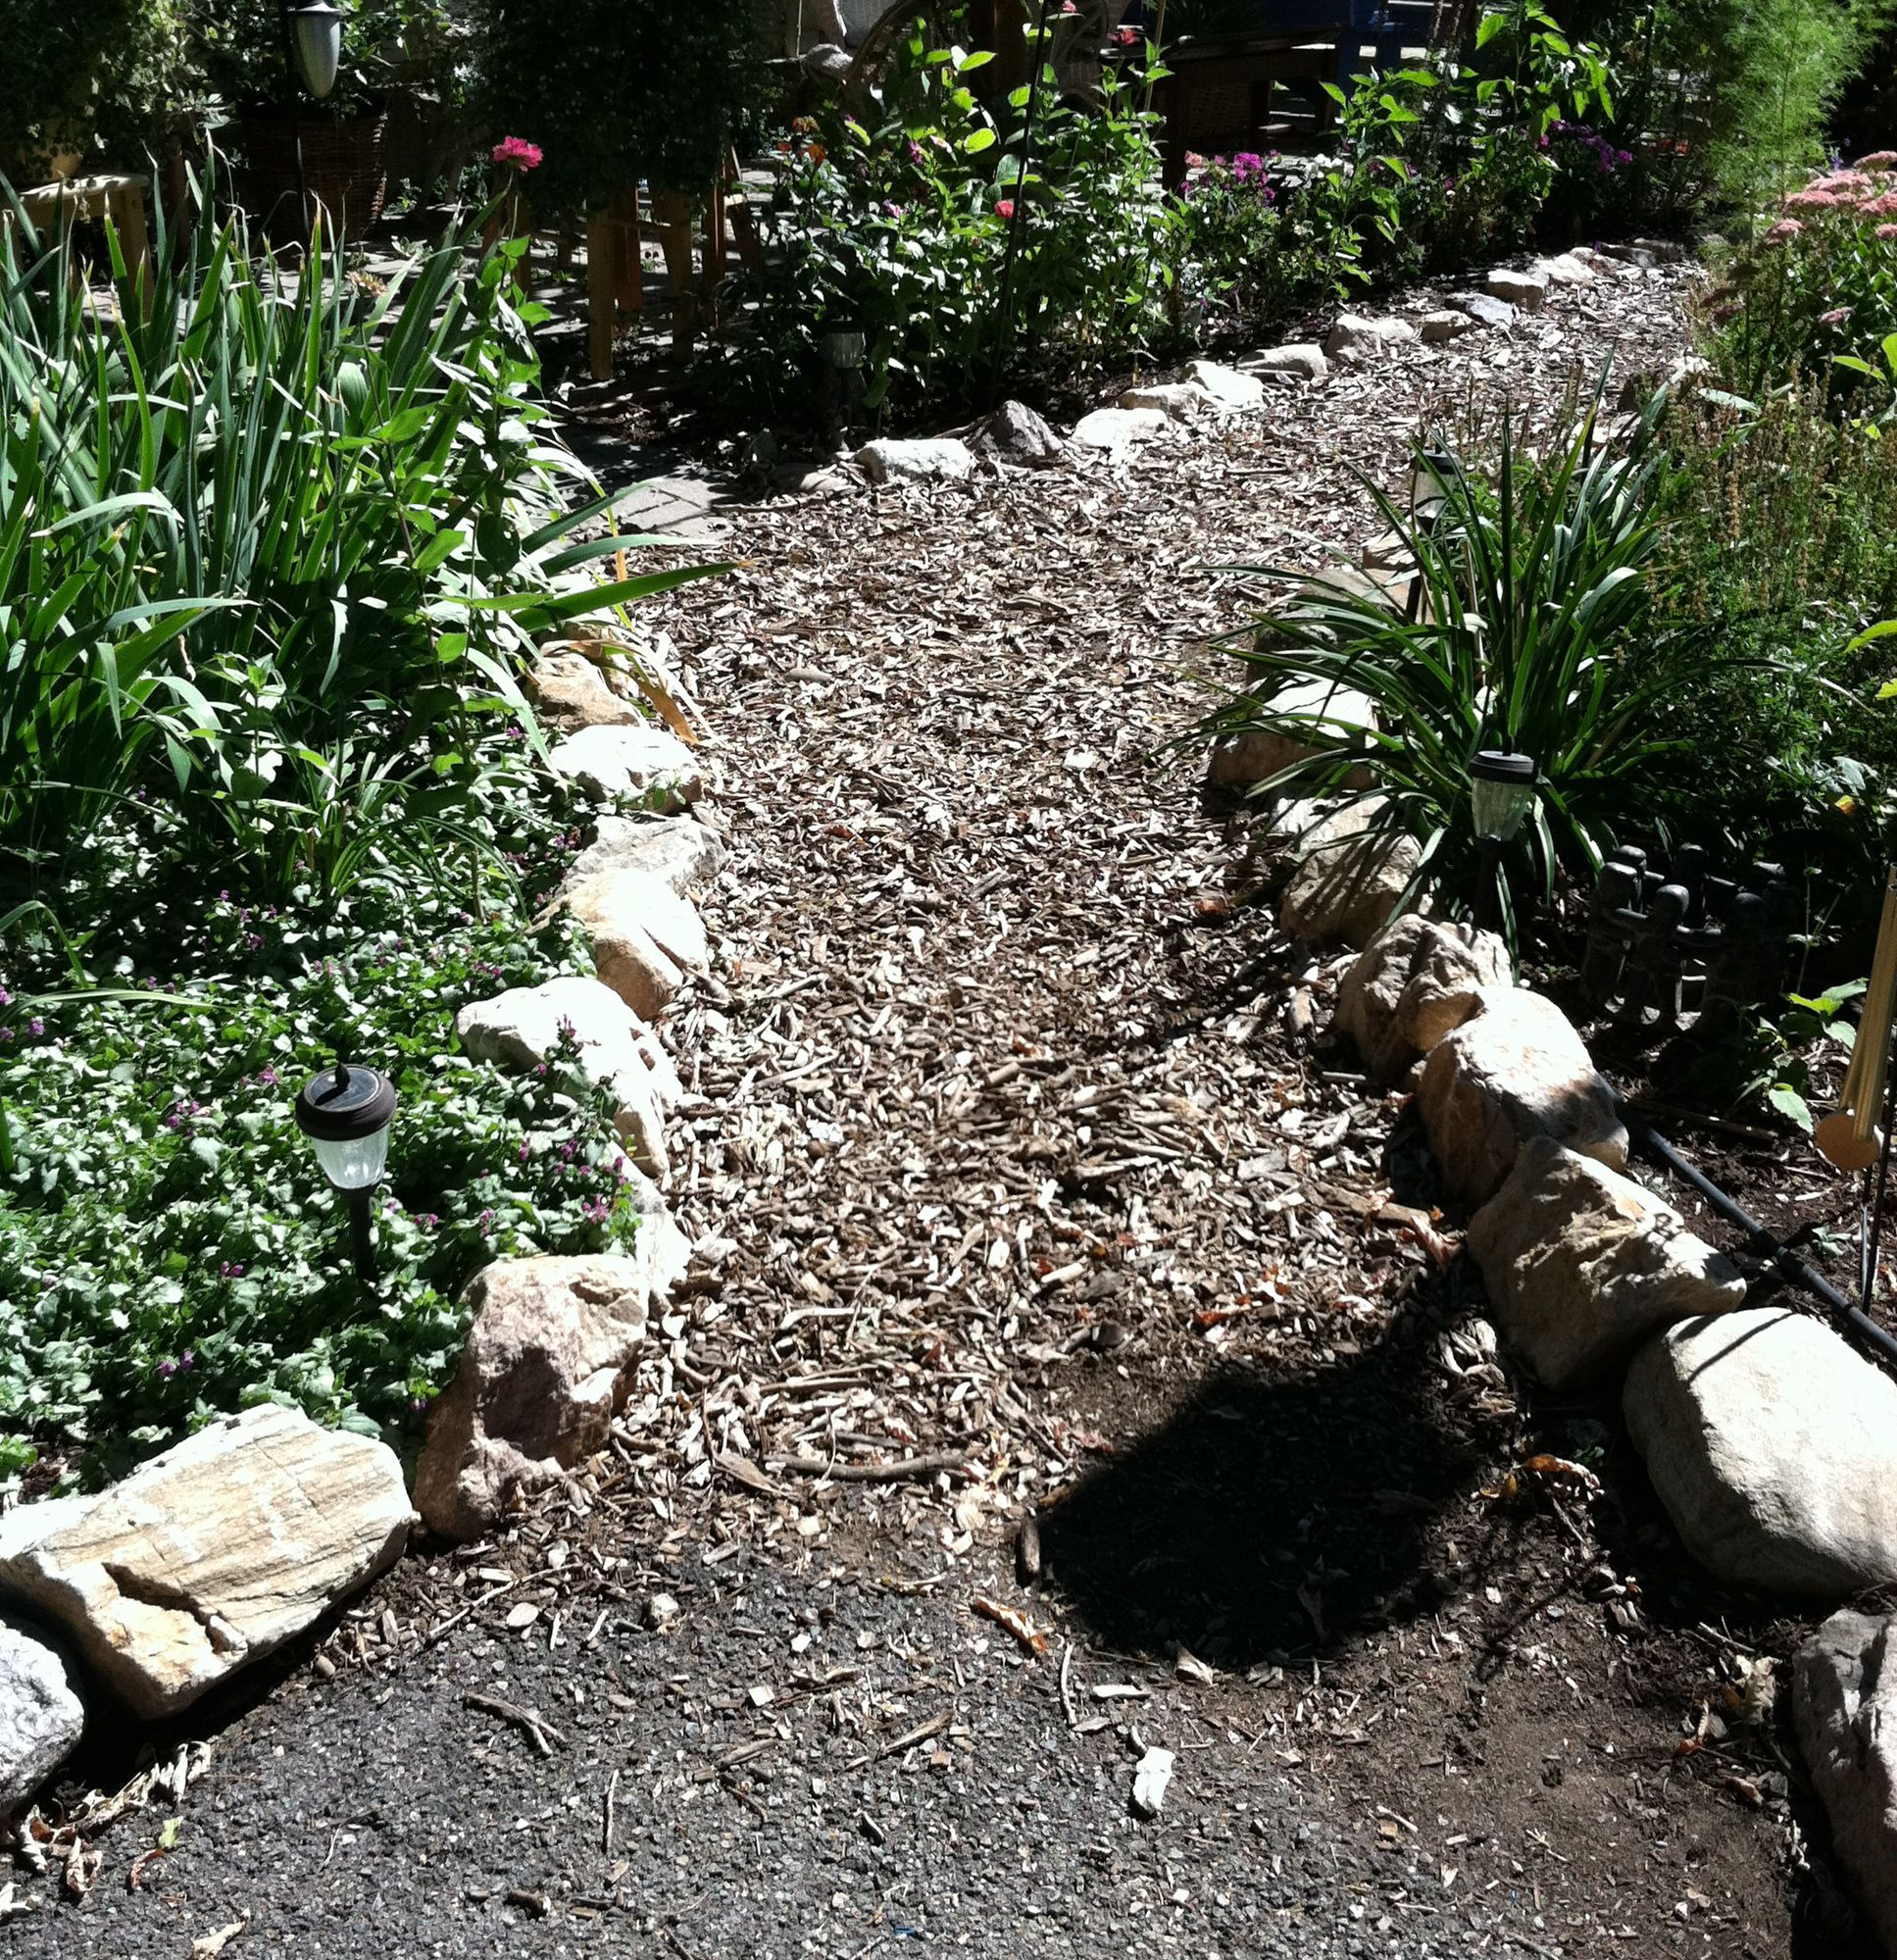 How to make a garden path with gravel - How To Make A Hillside Garden Path Wood Chips For Garden Path Our Garden